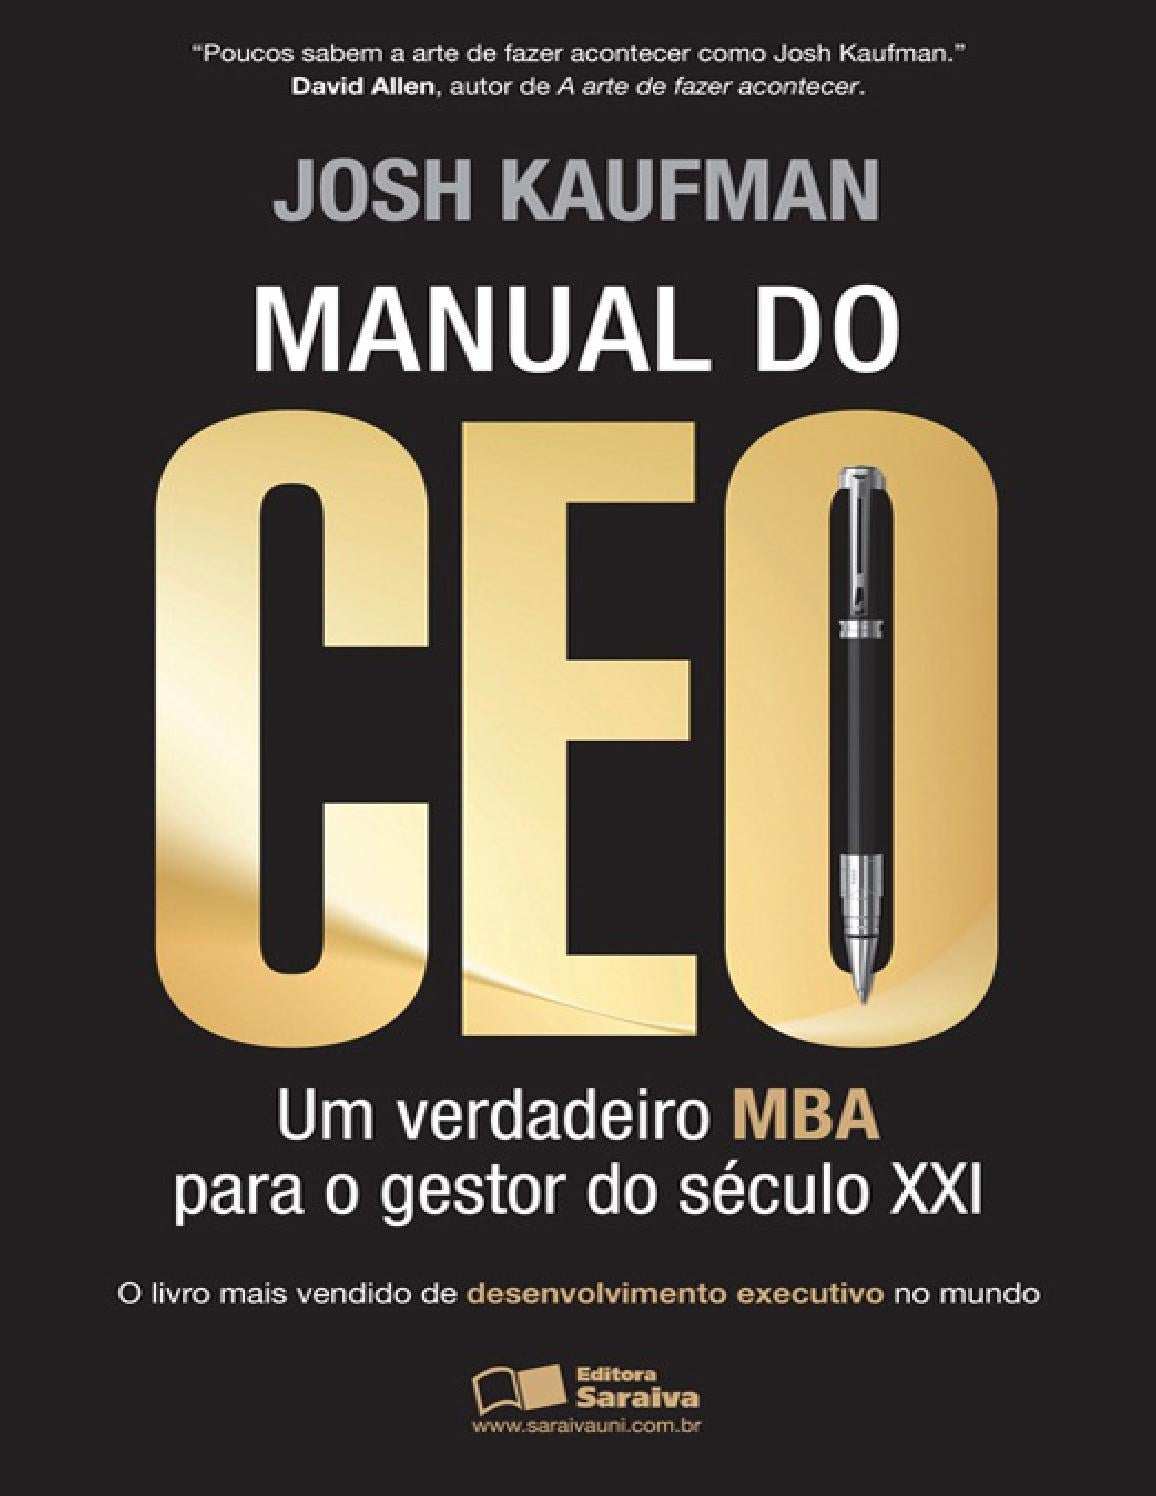 Manual do ceo josh kaufman by rangel renato issuu fandeluxe Choice Image